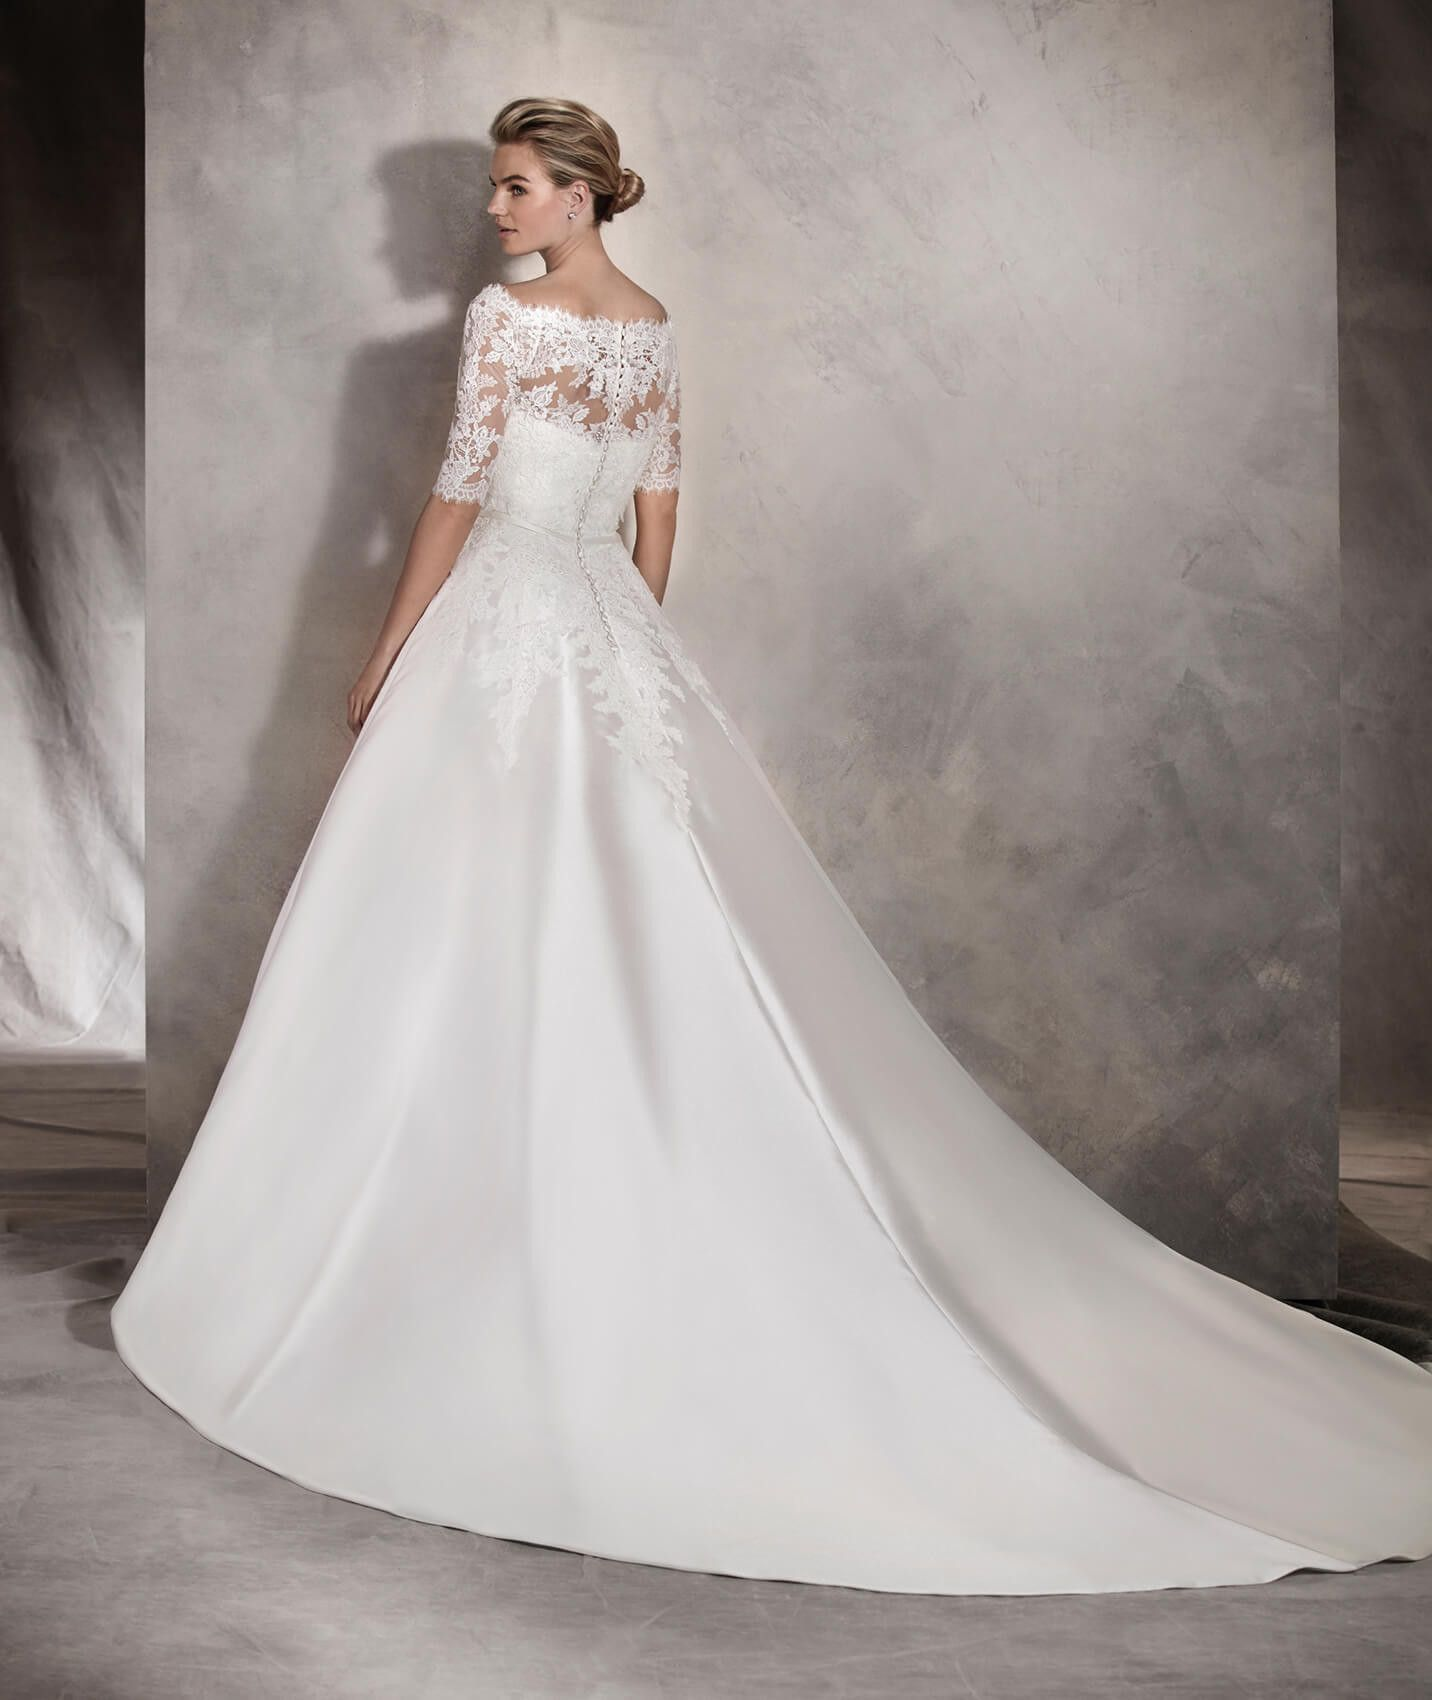 Albasari - Wedding dress with an off-the-shoulder neckline and skirt ...